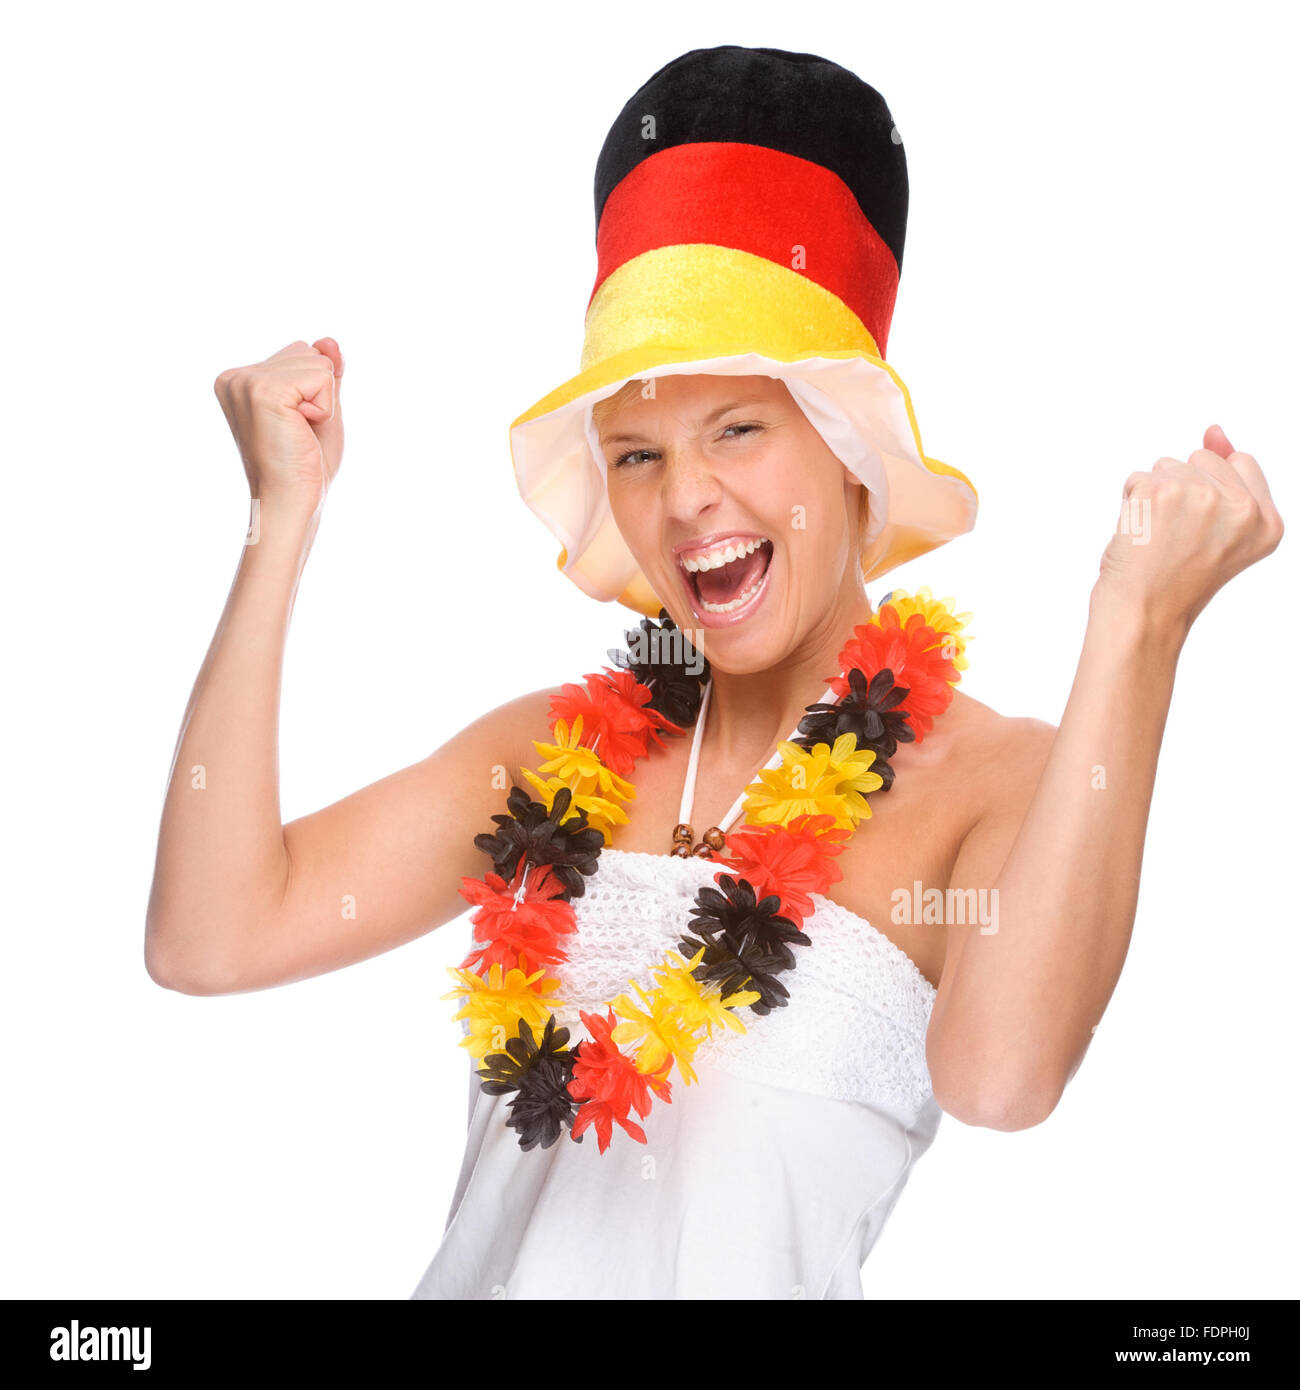 germany,fan,german culture,soccer fan,german fans - Stock Image